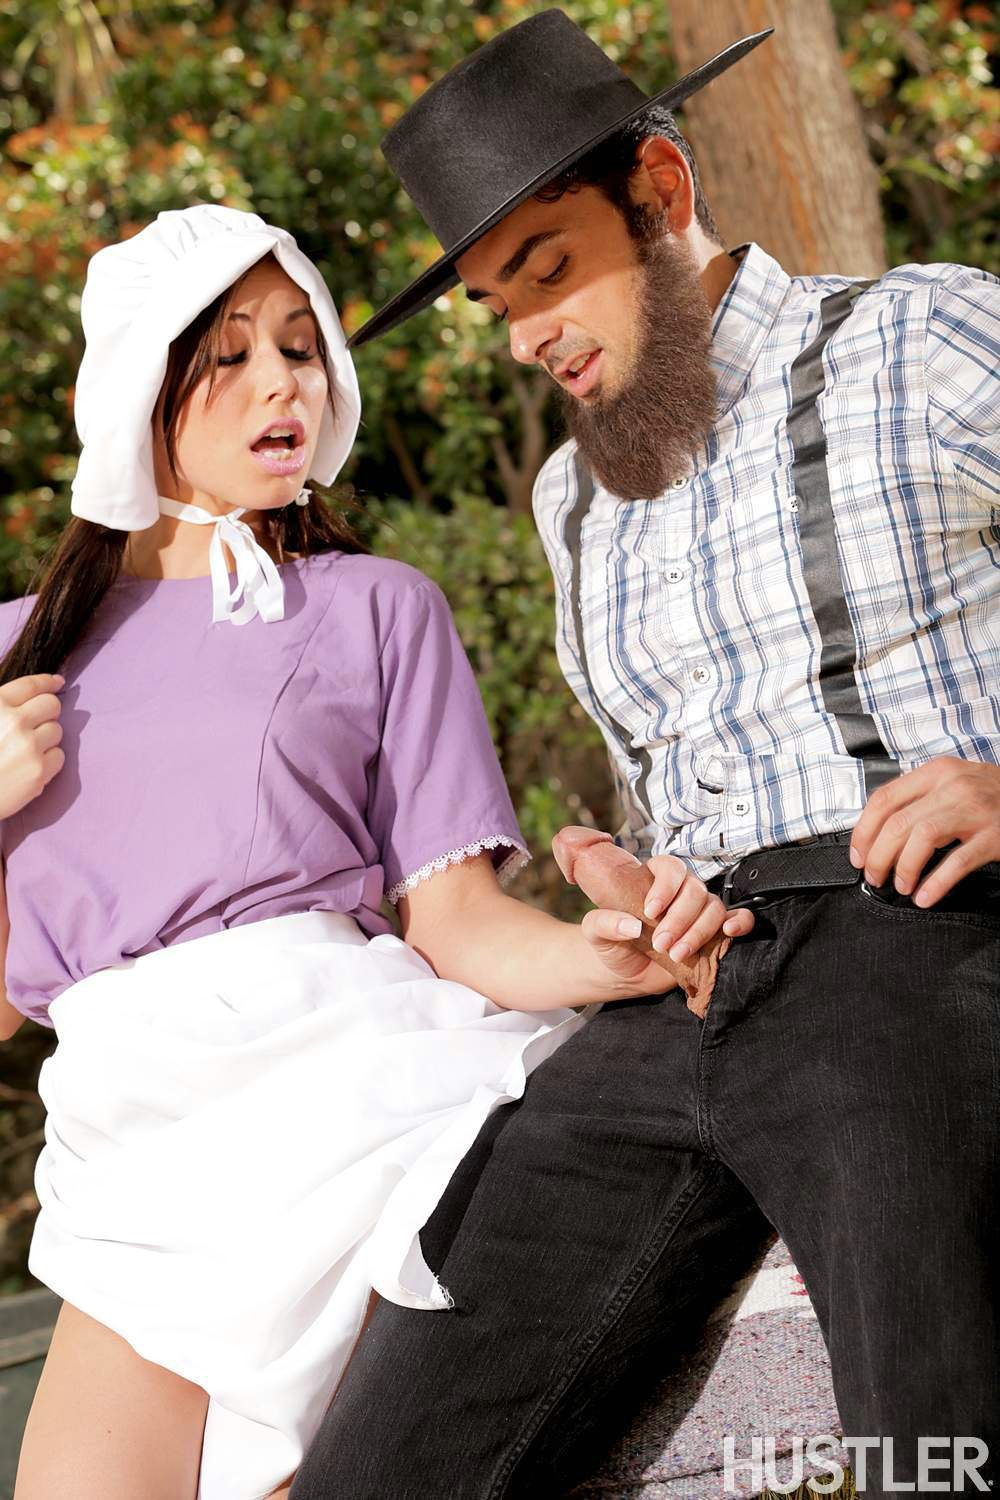 Amish girl blowjob - 1 part 2